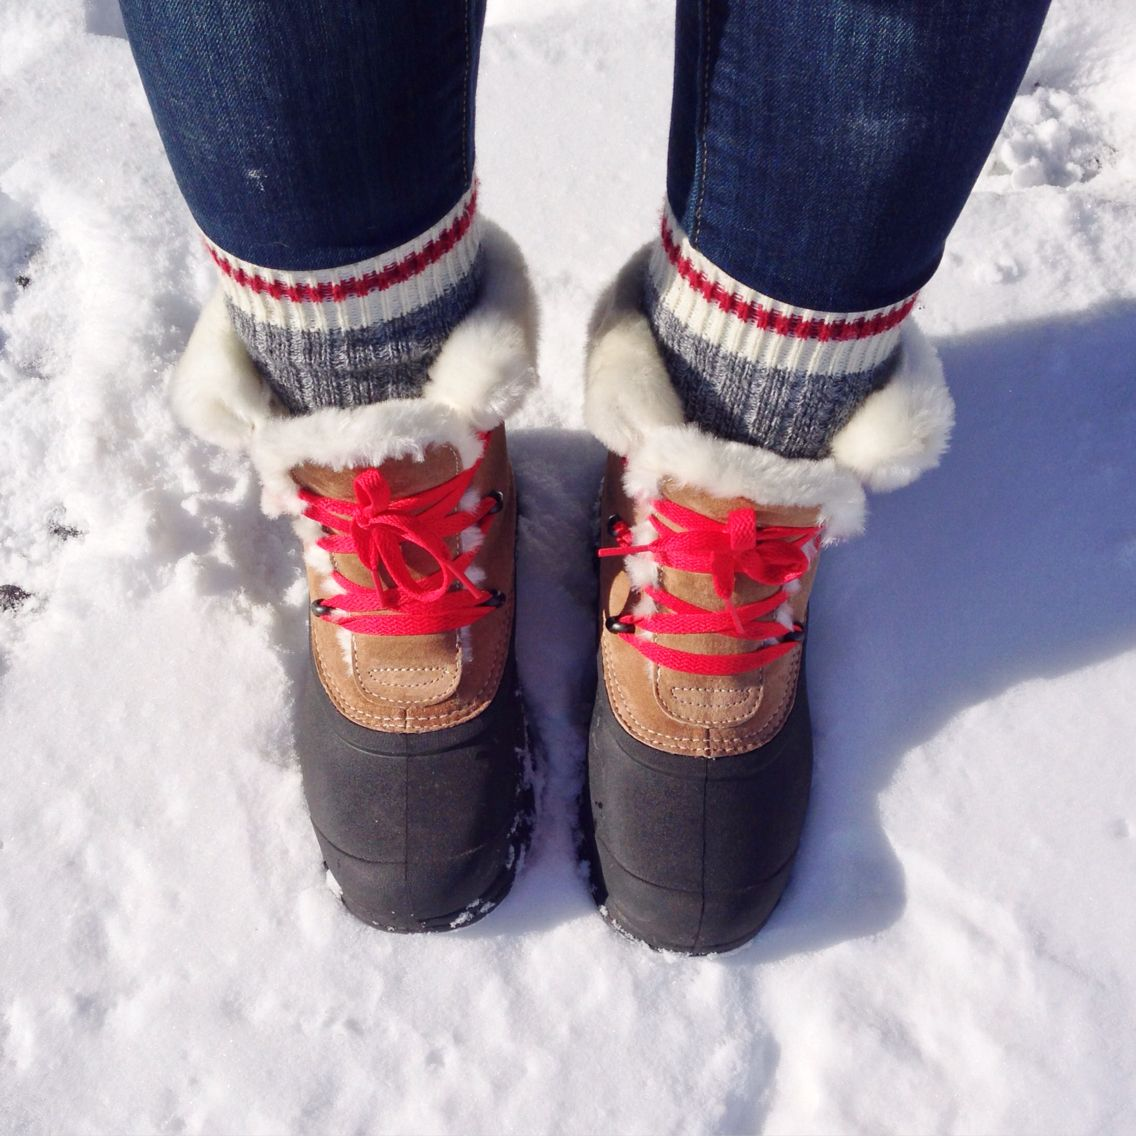 Sorel boots with red laces for winter